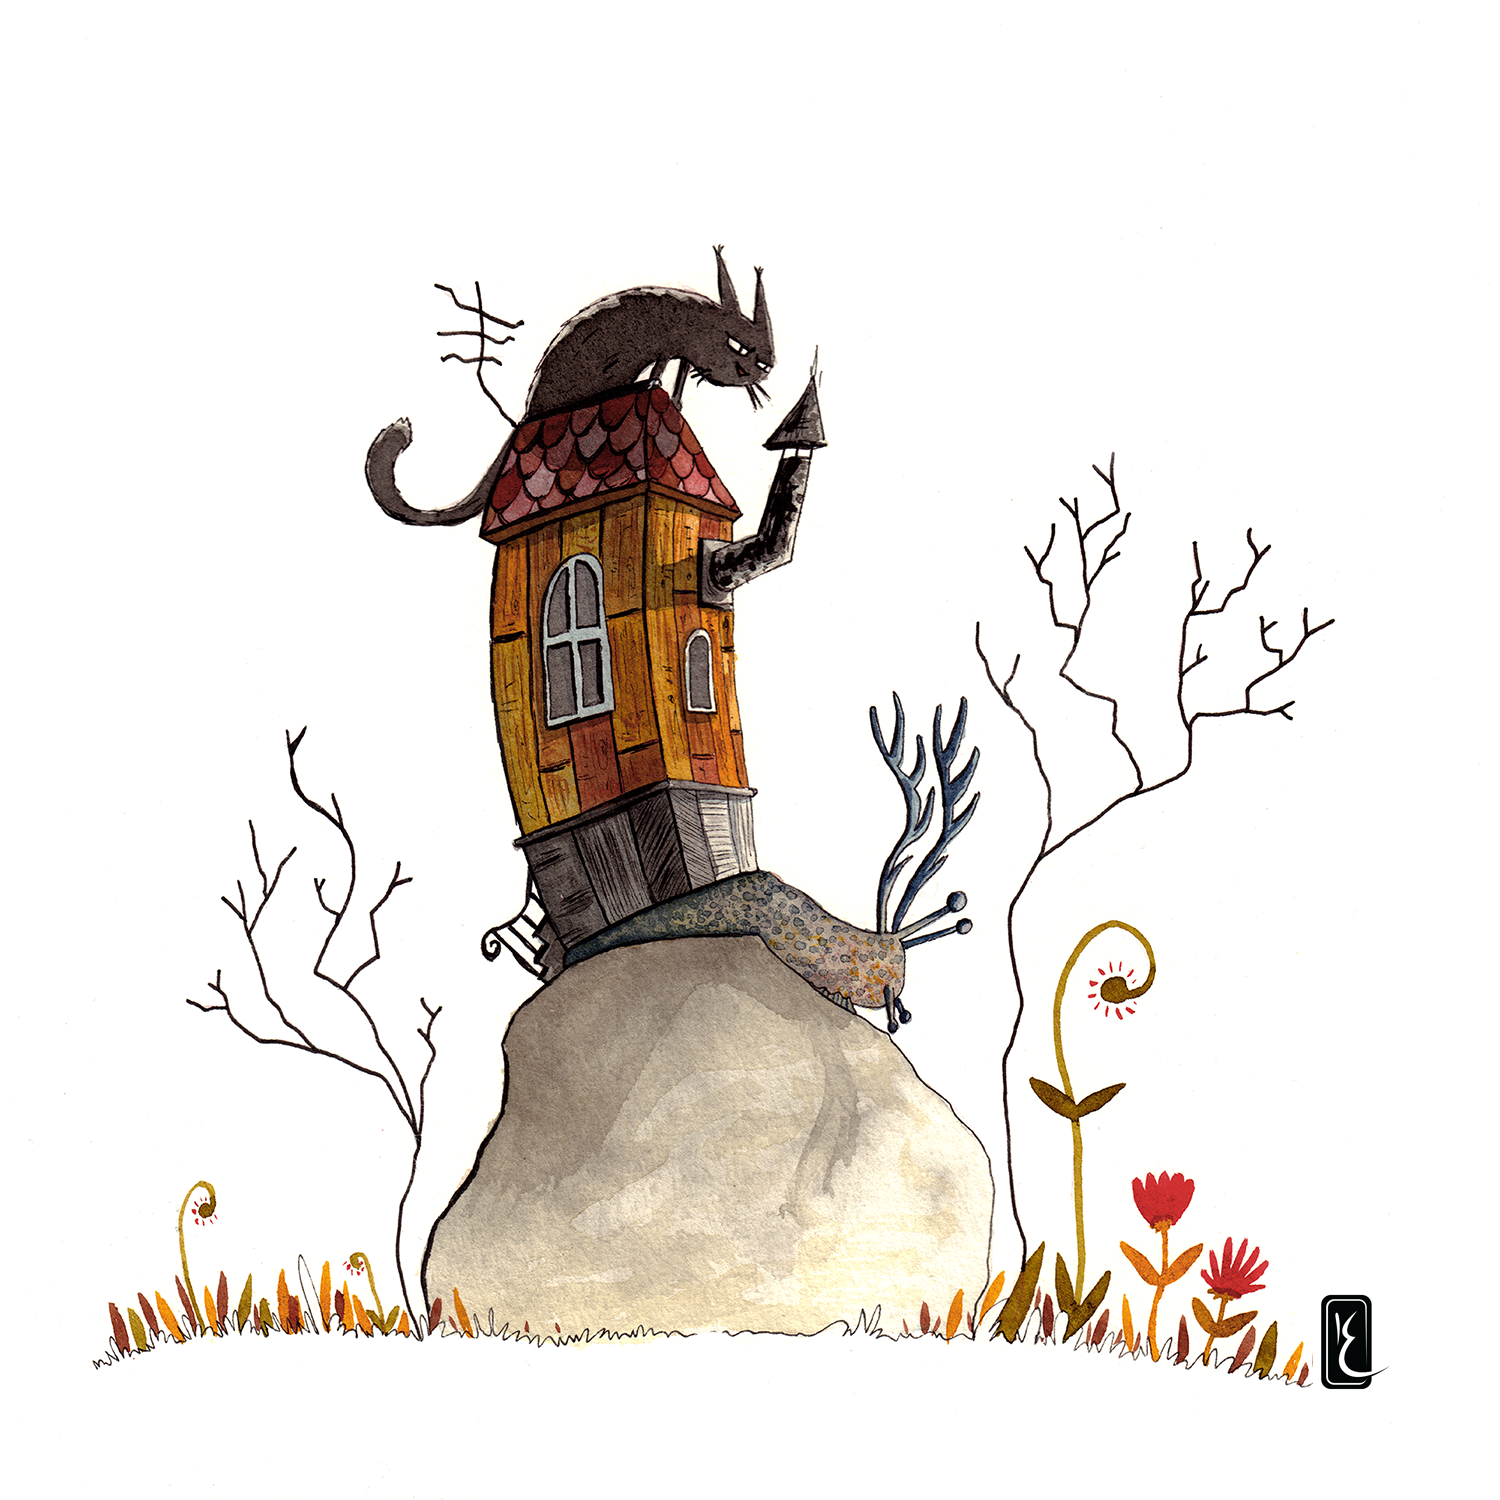 014-cat-house-30cm-paper-ink-and-aquarel-by-Kevin-Foeshel-Lauryssen.png